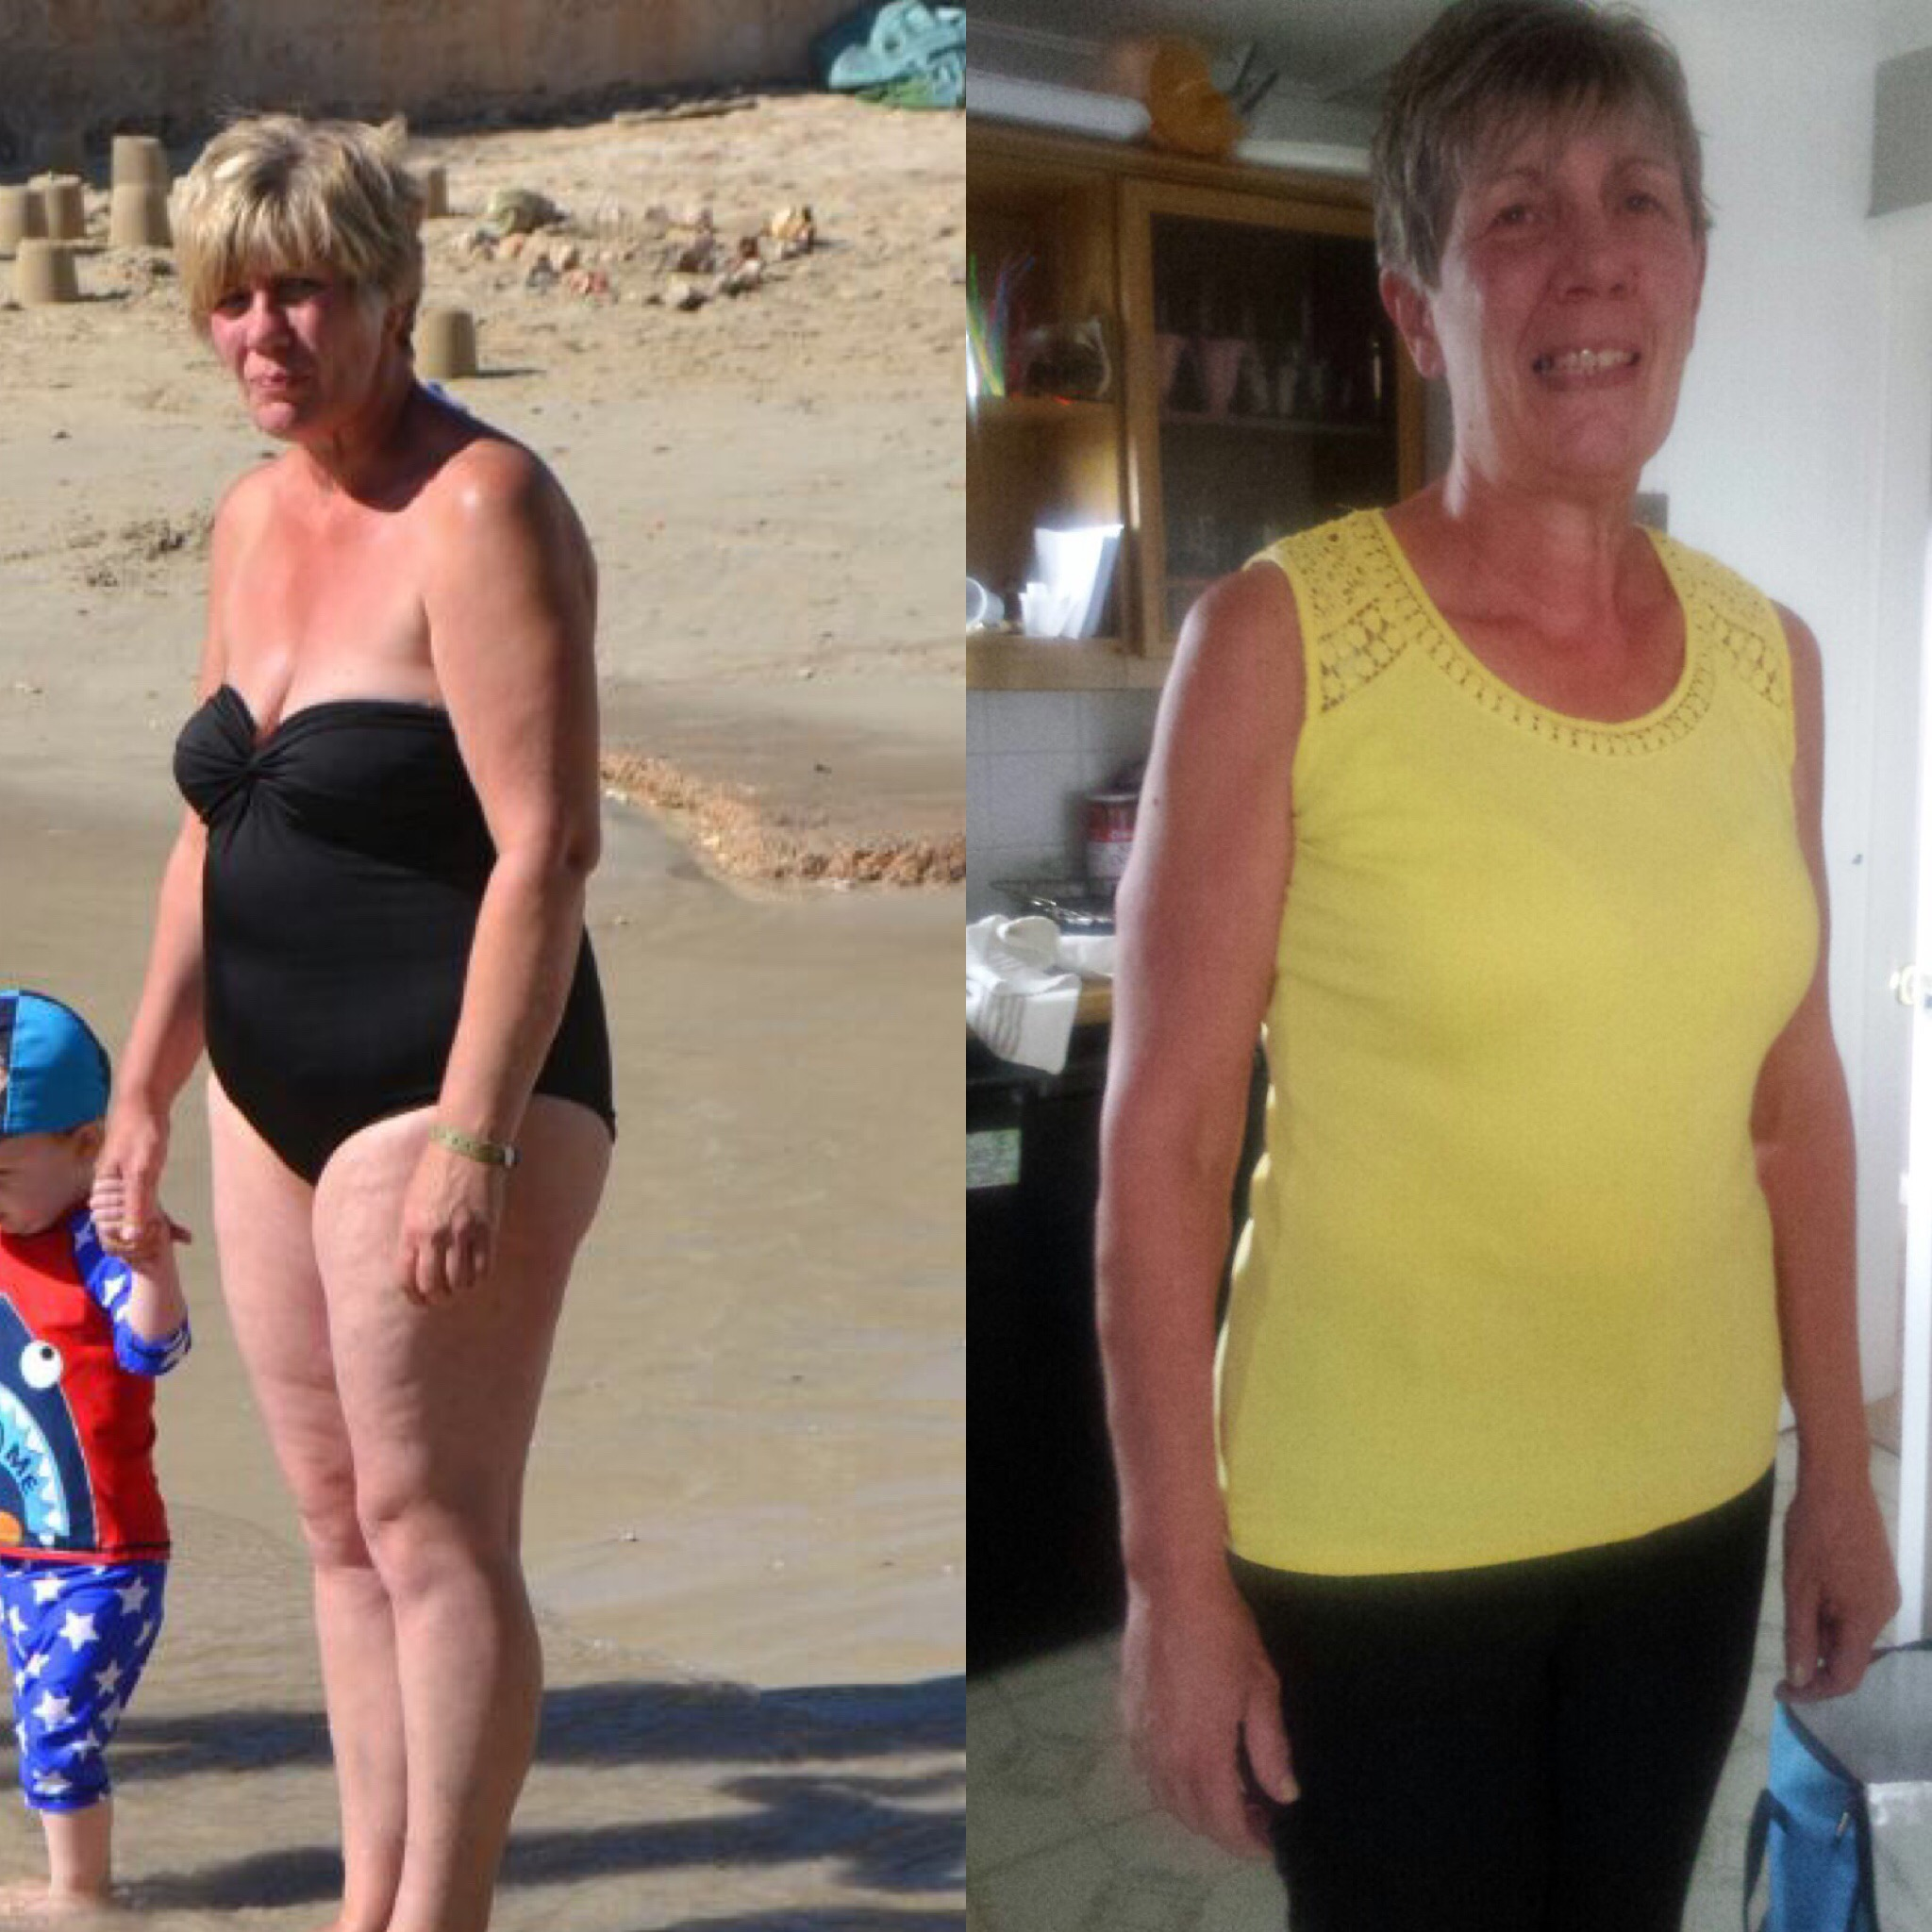 Alyson has lost over 2 stone with us in just 12 weeks. This was done by managing diet and exercise around running a small business.